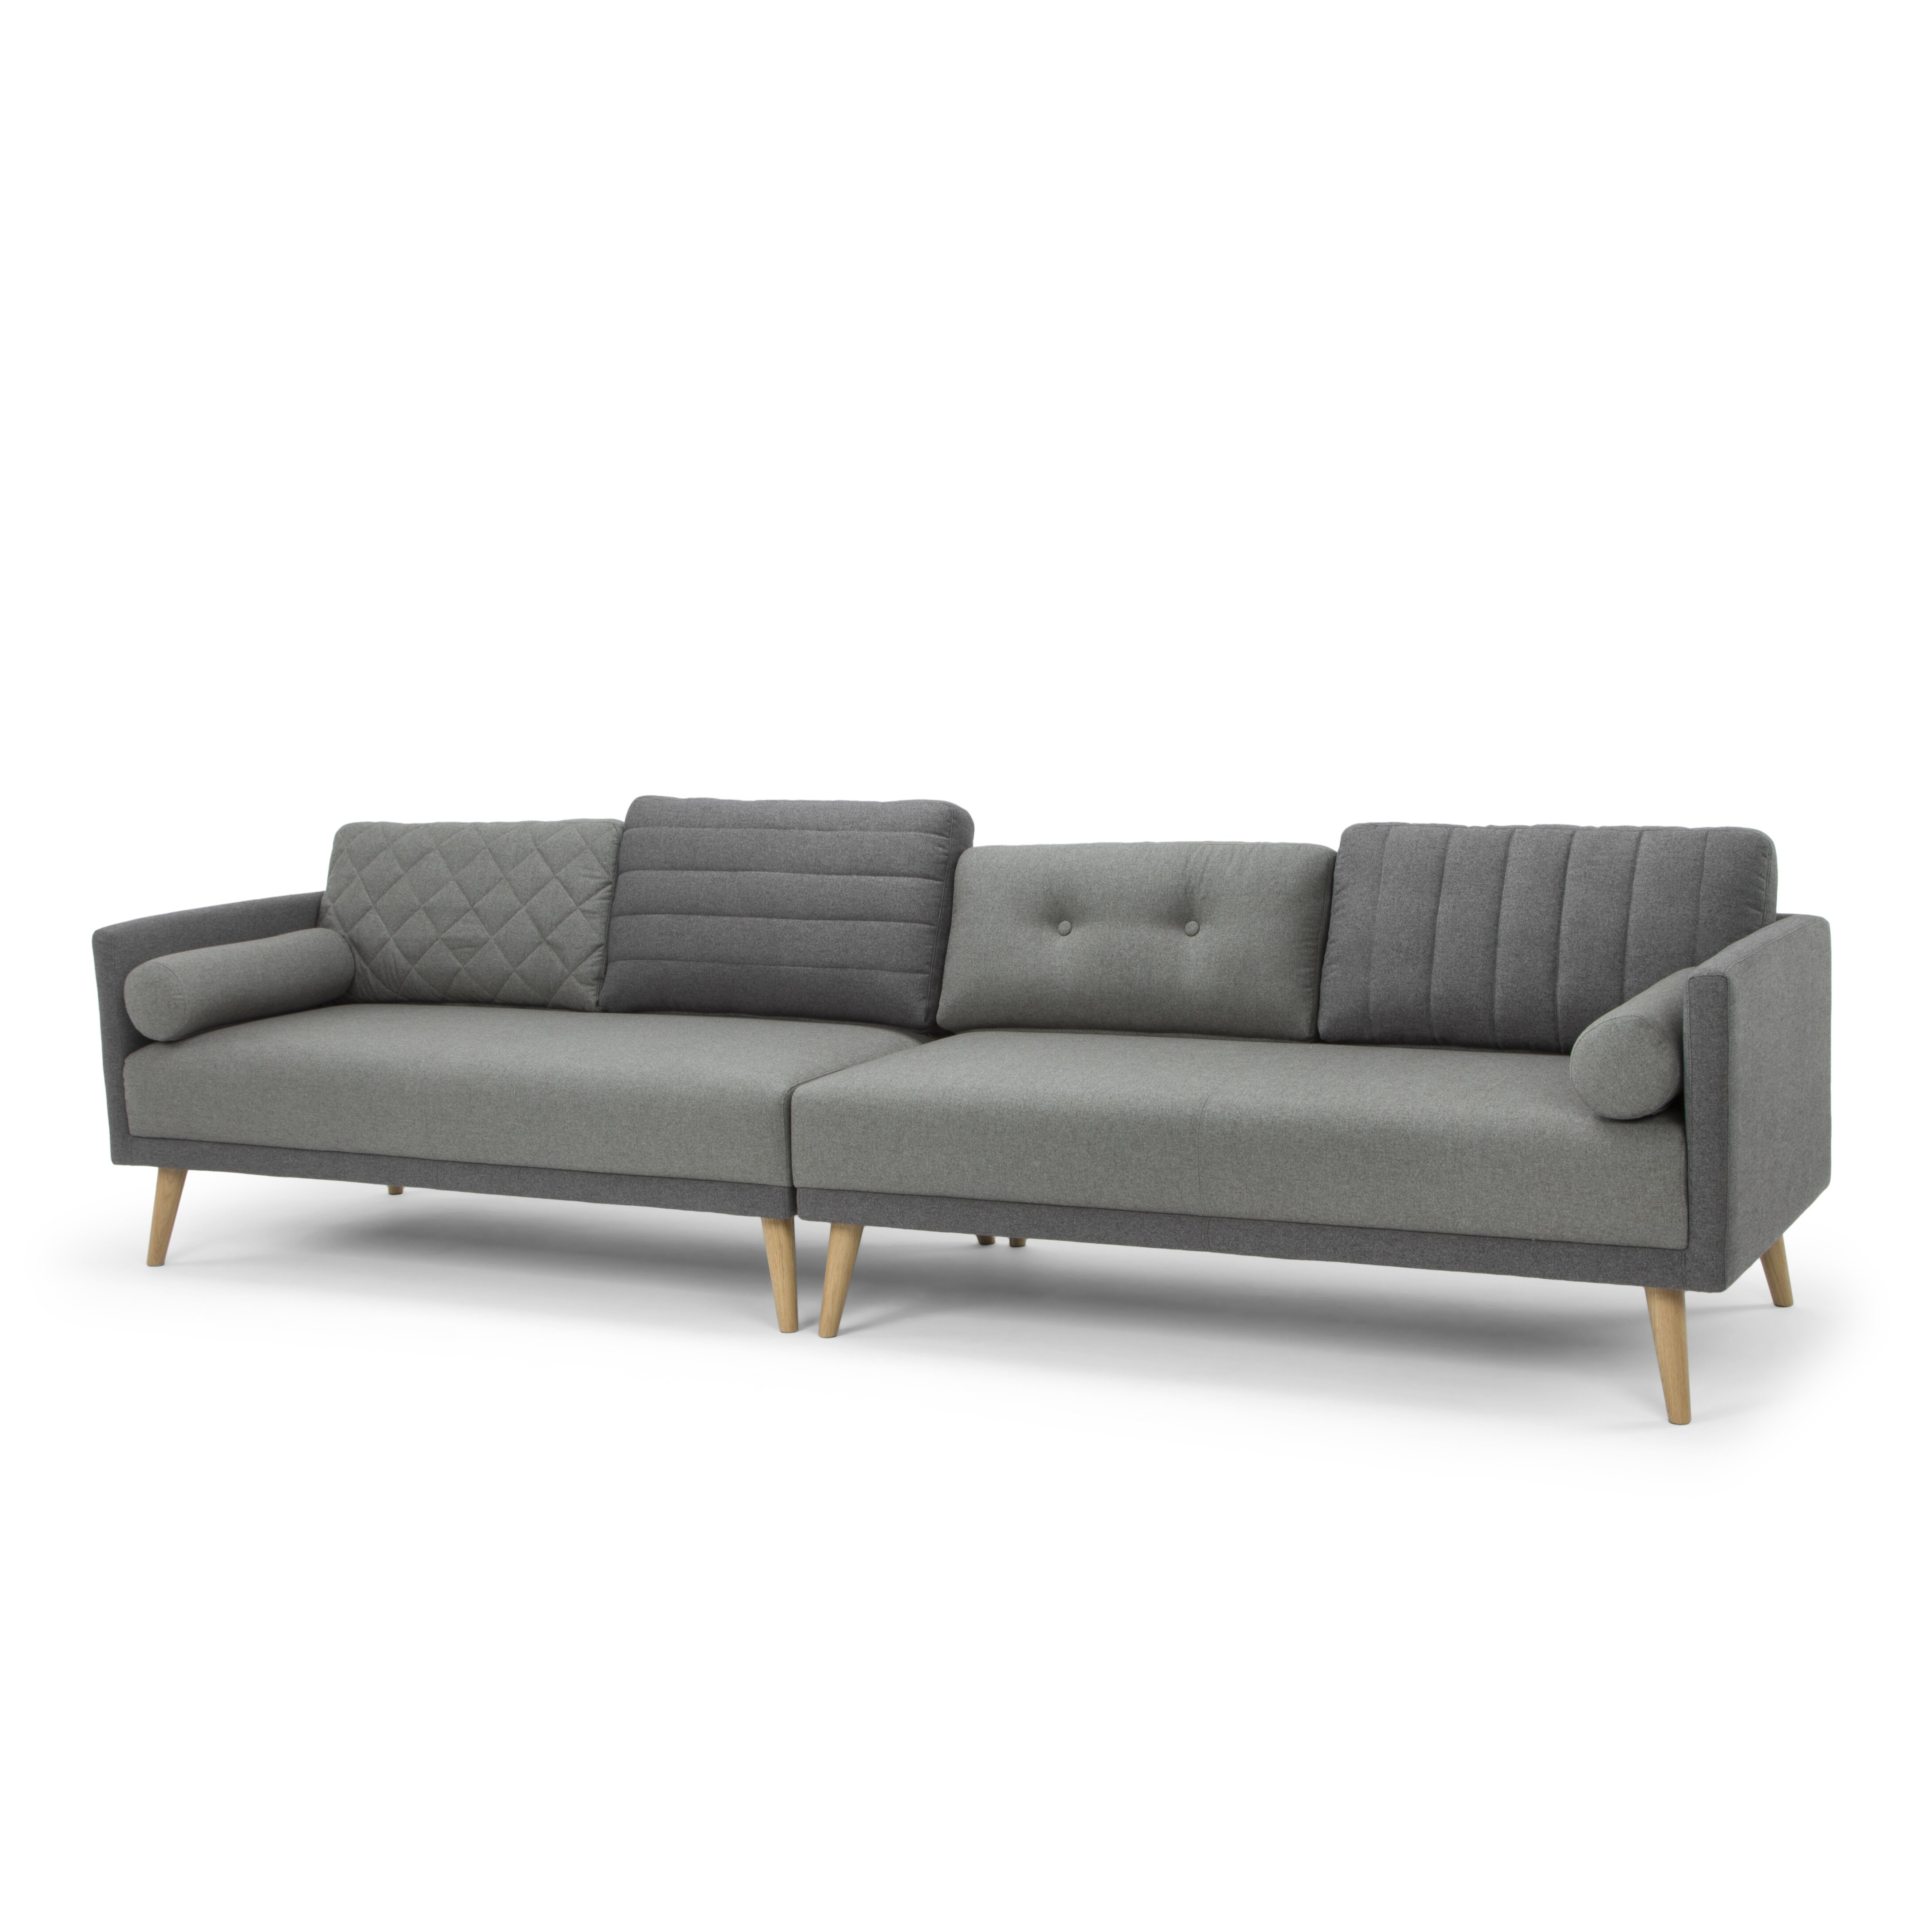 100 Comfortable Sleeper Sofa Sofas Center Affordable